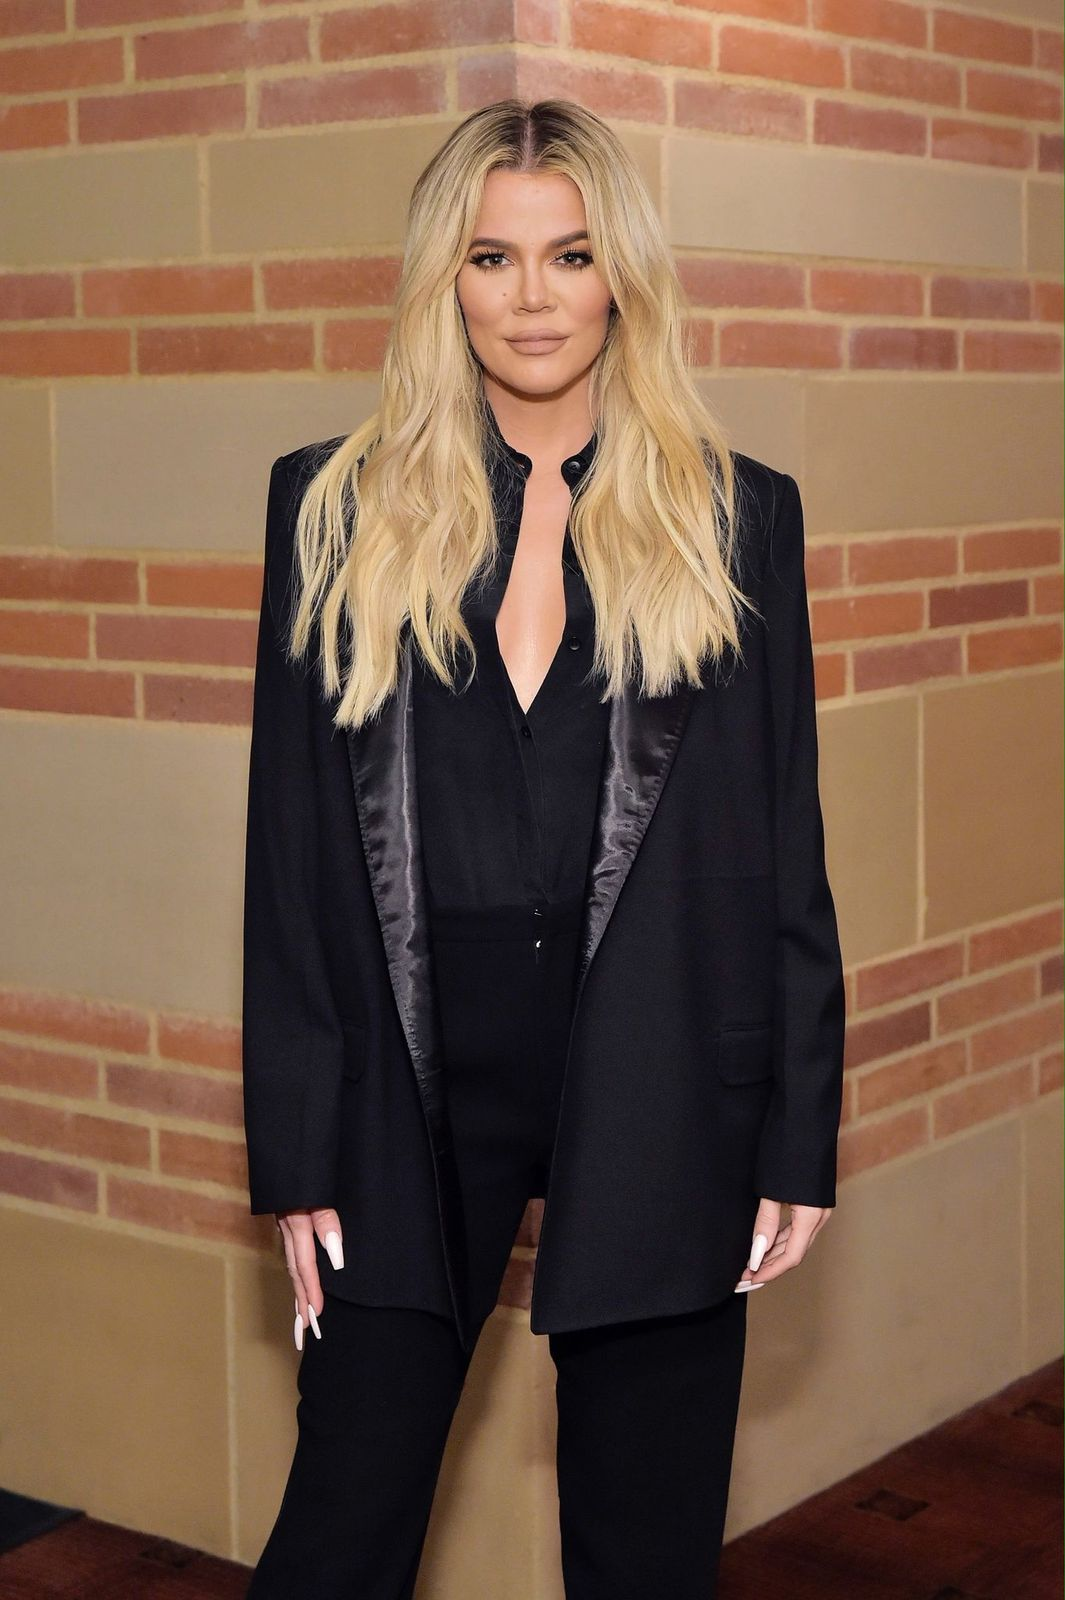 Khloe Kardashian at The Promise Armenian Institute Event At UCLA at Royce Hall on November 19, 2019 in Los Angeles, California | Photo: Getty Images